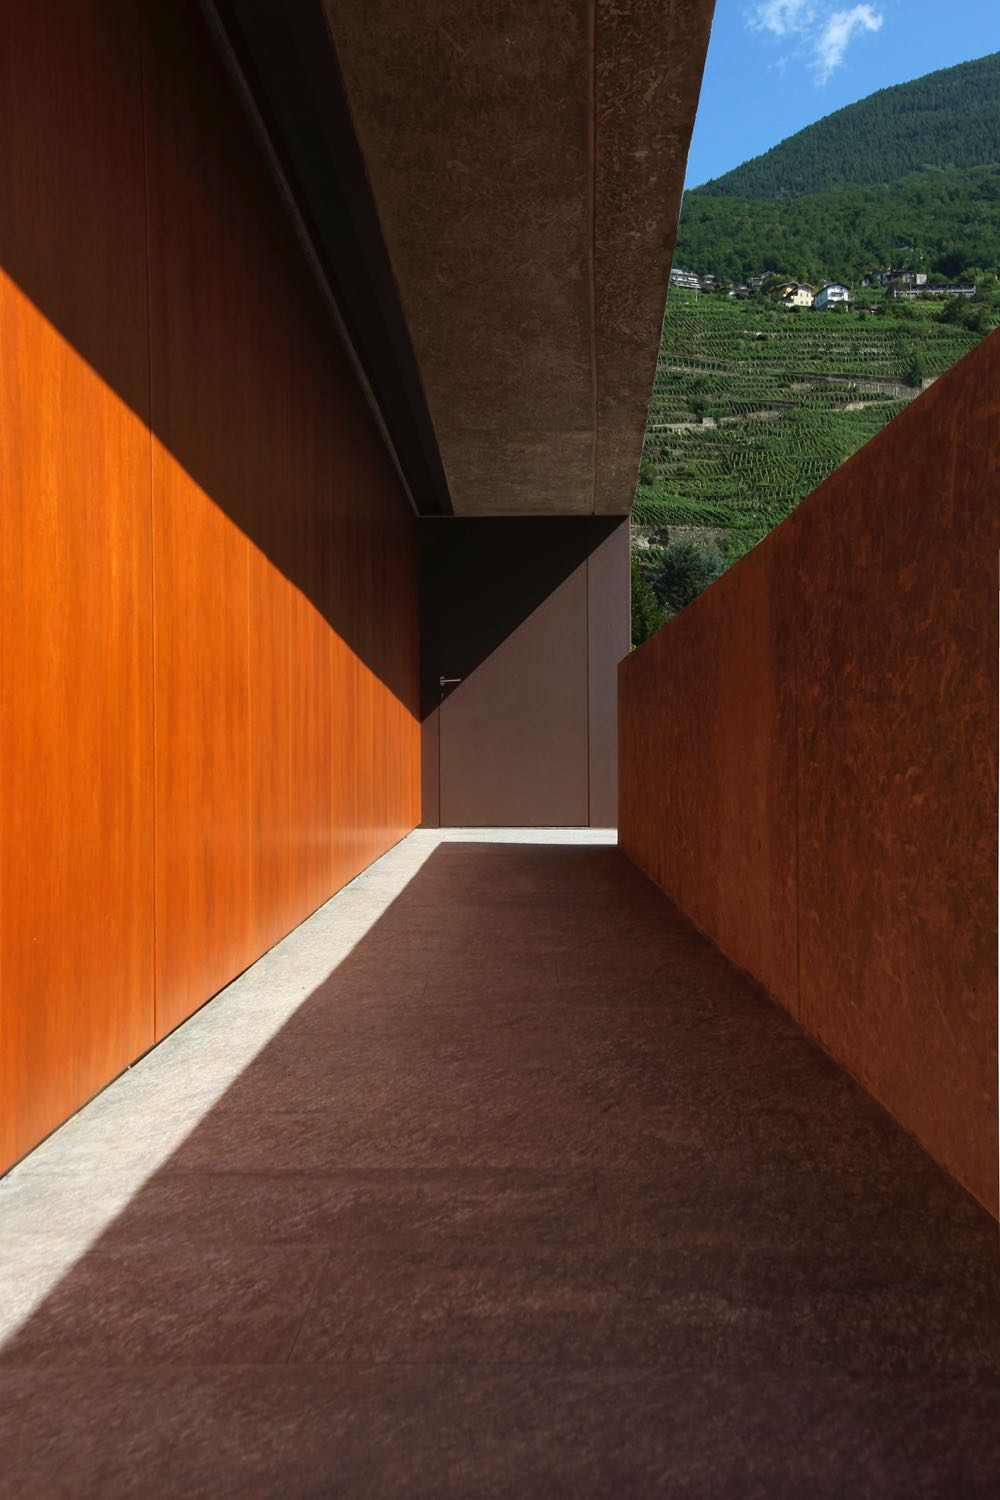 The entrance corridor of the DMB House by Act_Romegialli (2010).